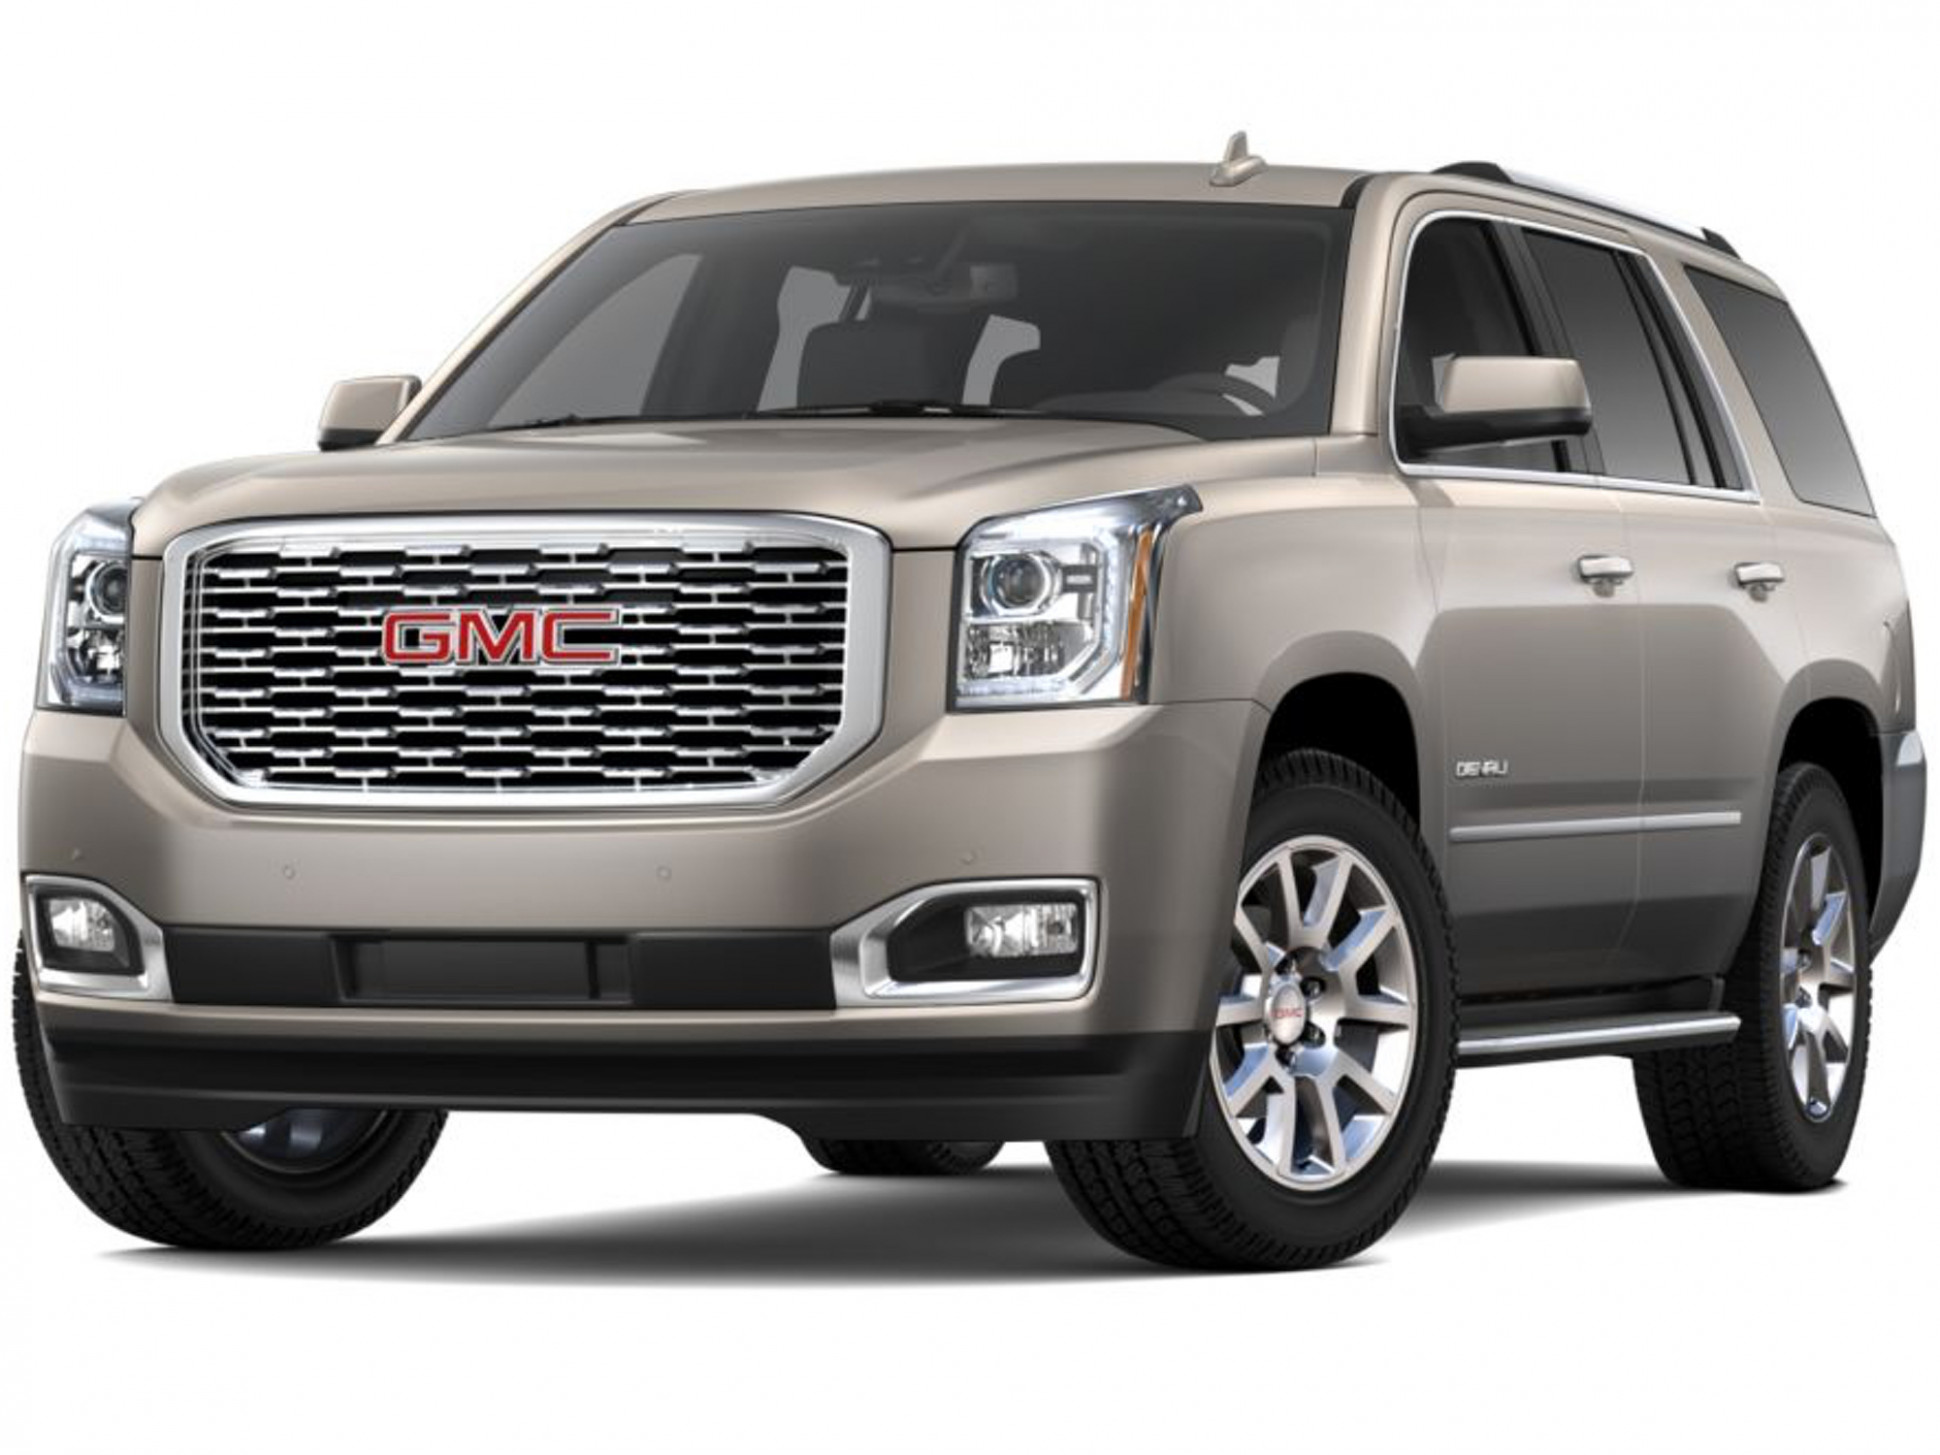 7 GMC Yukon: Here's What's New And Different | GM Authority